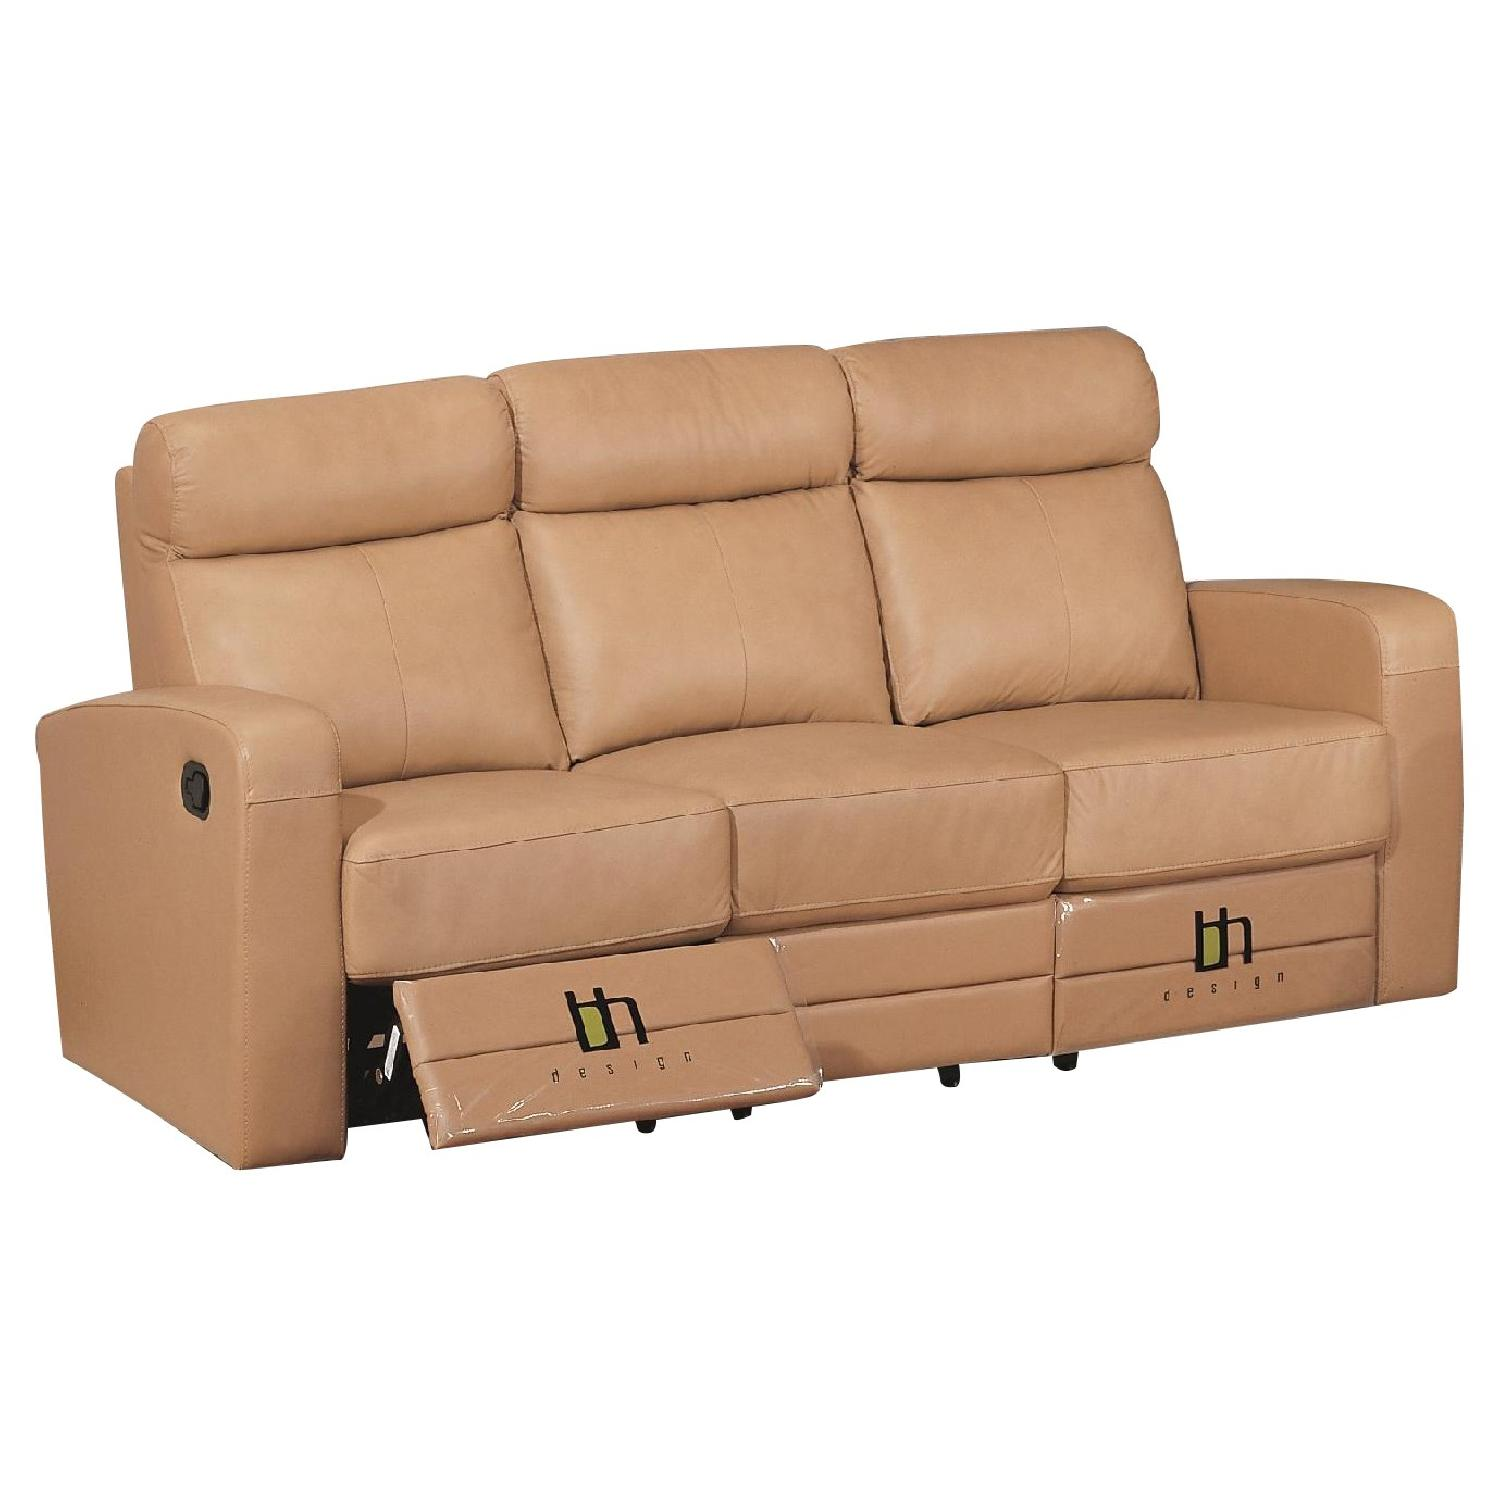 Apartment Size Recliner Sofa in Taupe Color Top Grain Leather w/ Double Leggett & Platt Recliners